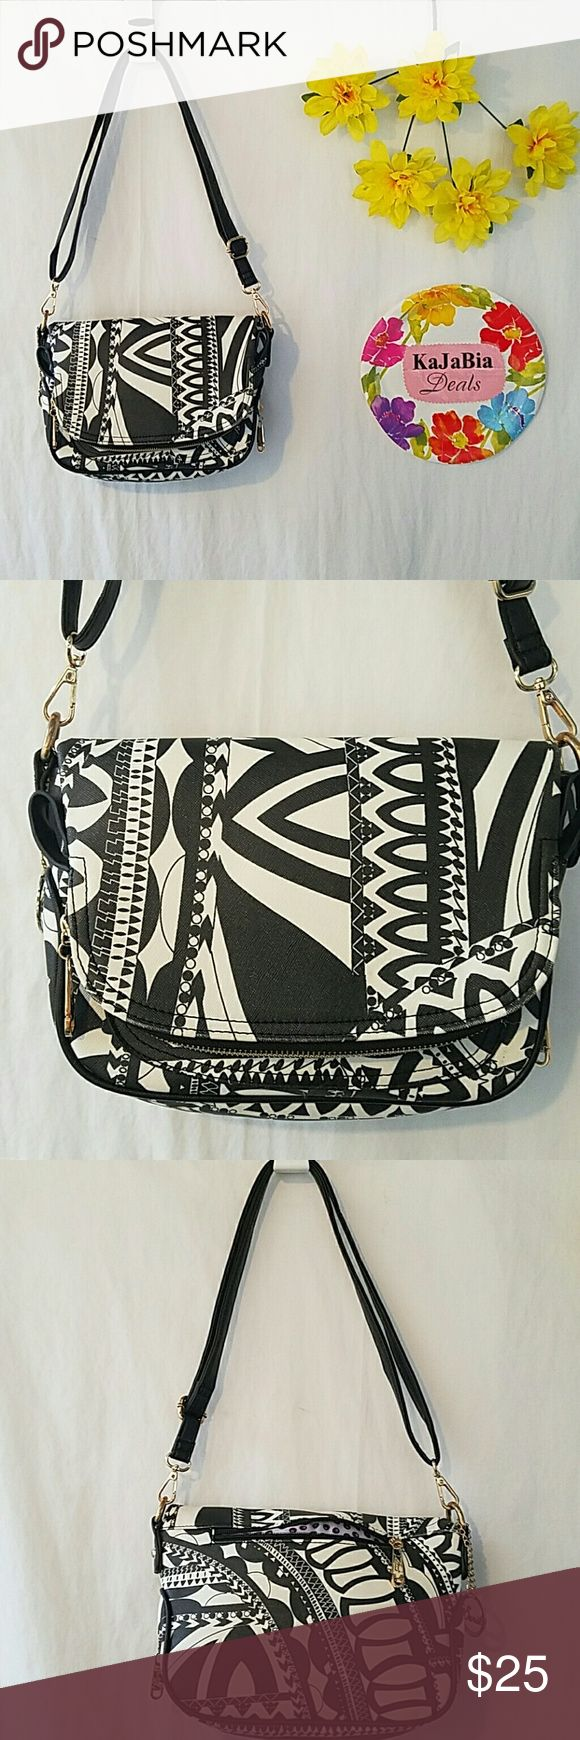 Sarit Crossbody/shoulder Bag Nice black and white print. Gold zipers. Plenty of pockets. Gently used condition. Very pretty. Bags Crossbody Bags